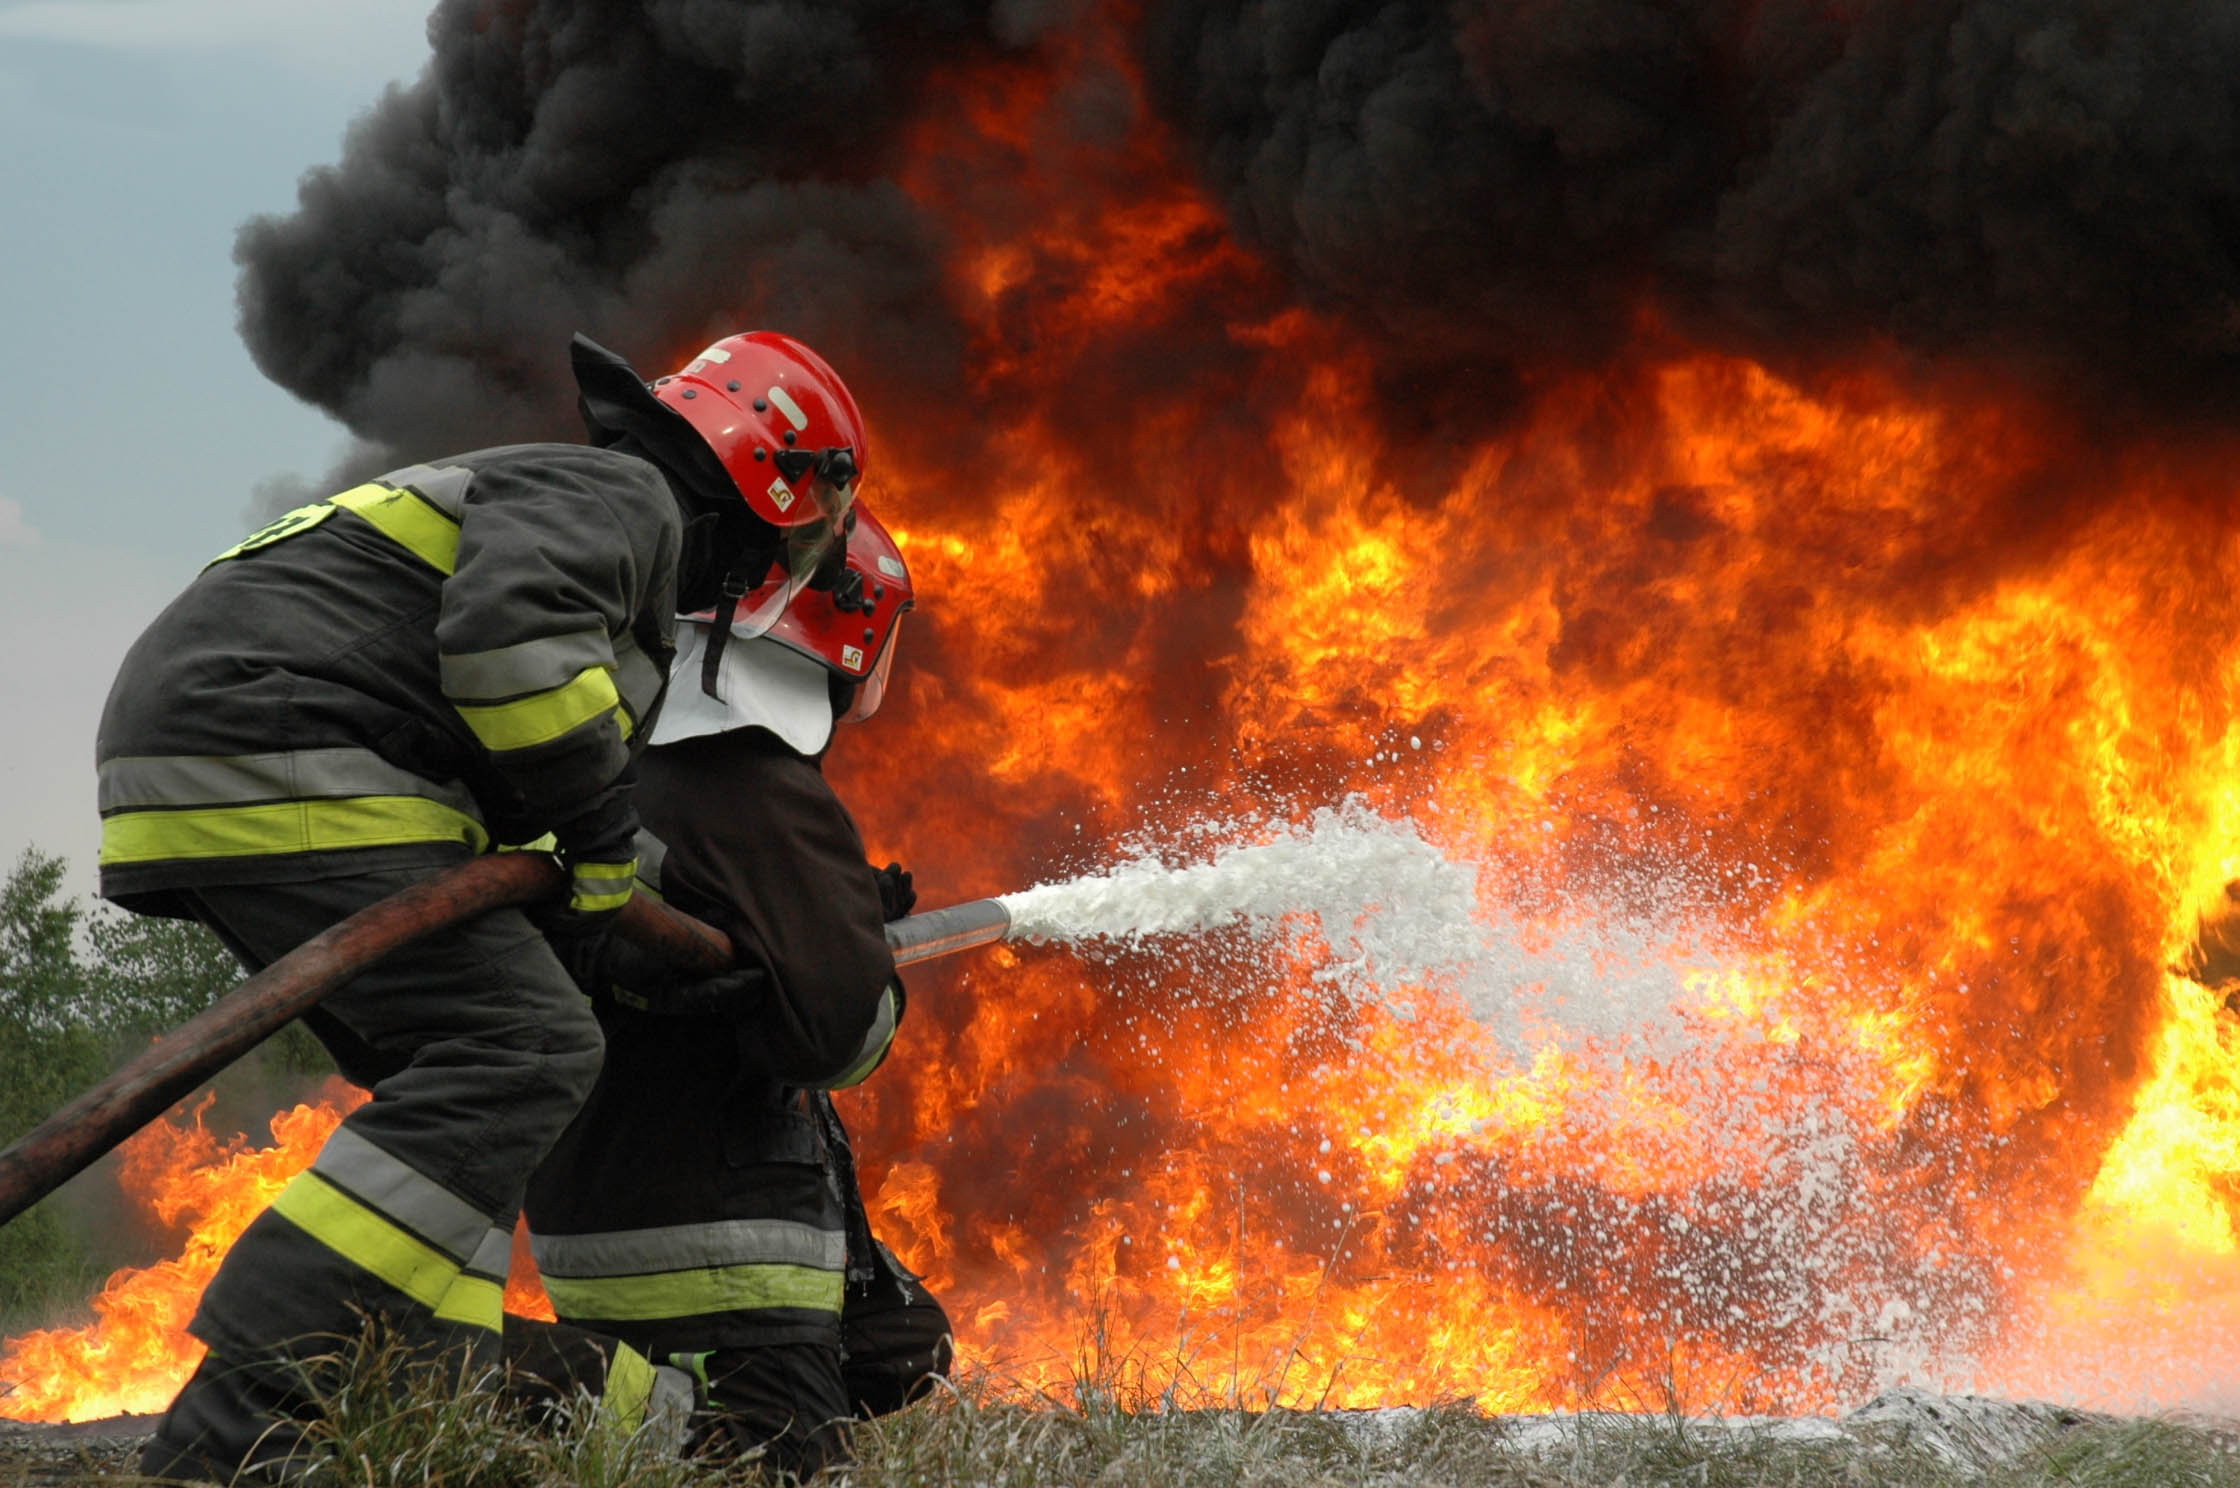 Firemen Battling Fire